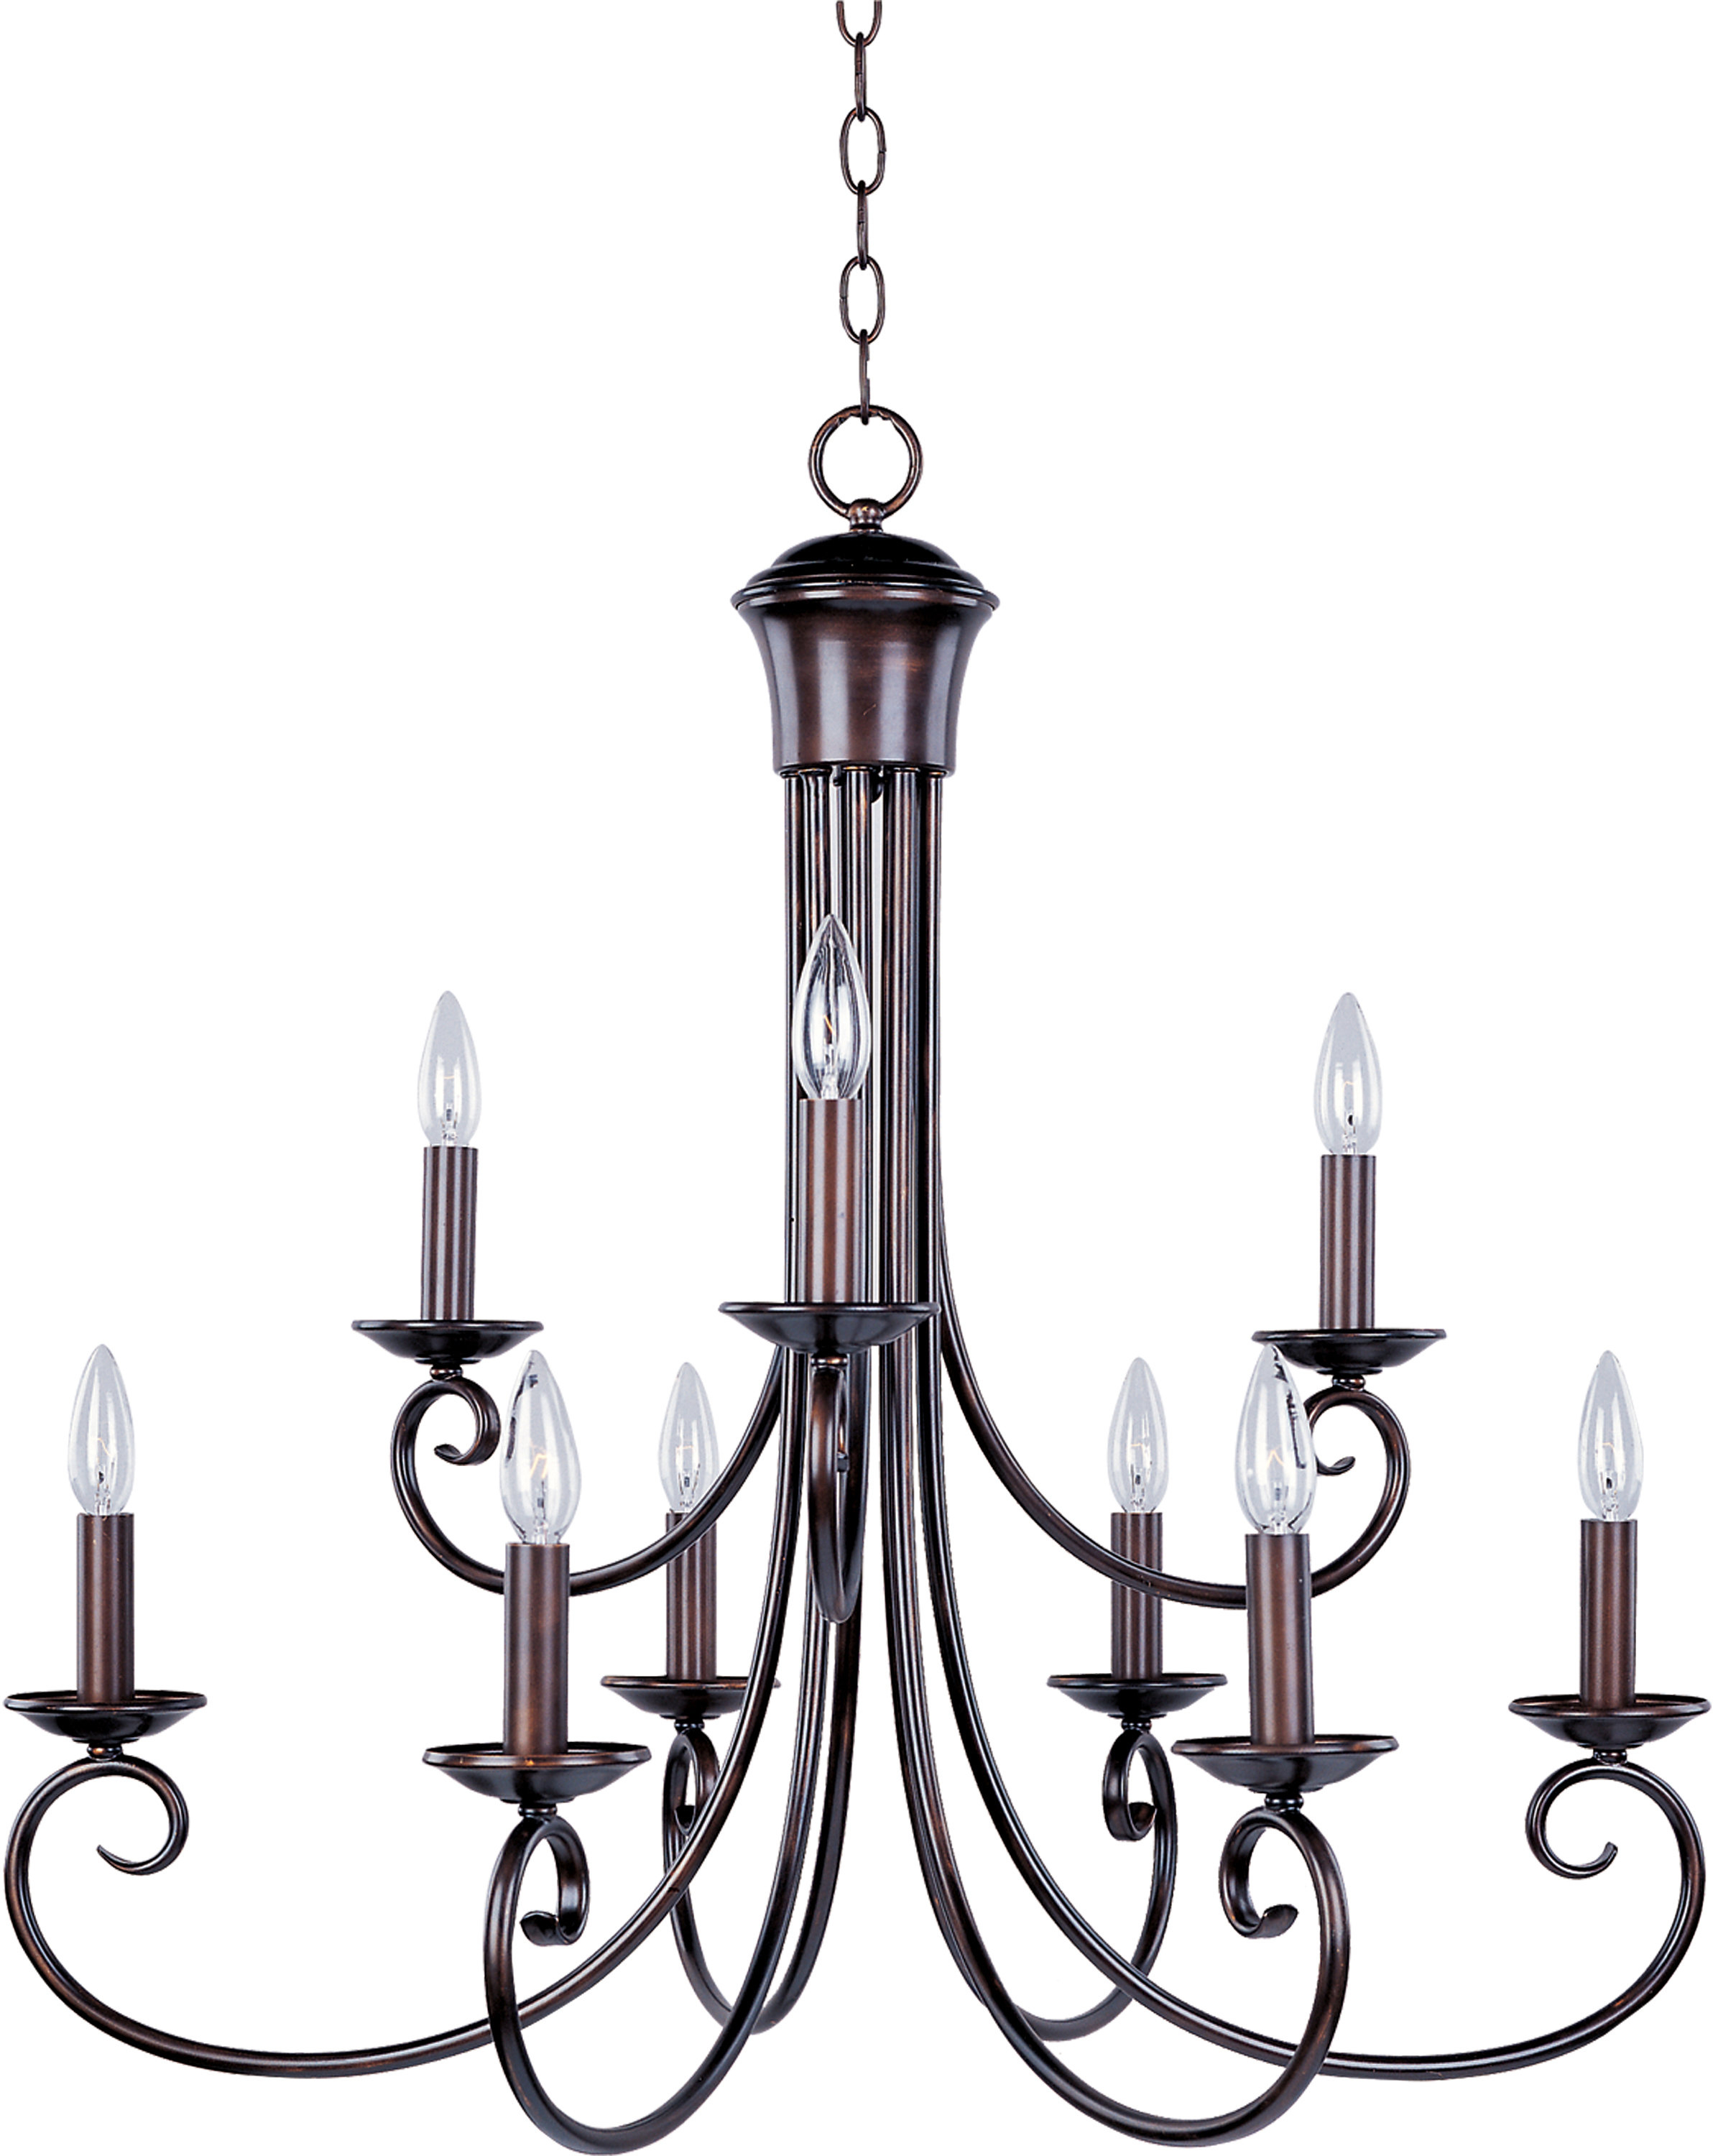 Recent Kenedy 9 Light Candle Style Chandelier Regarding Giverny 9 Light Candle Style Chandeliers (View 3 of 20)